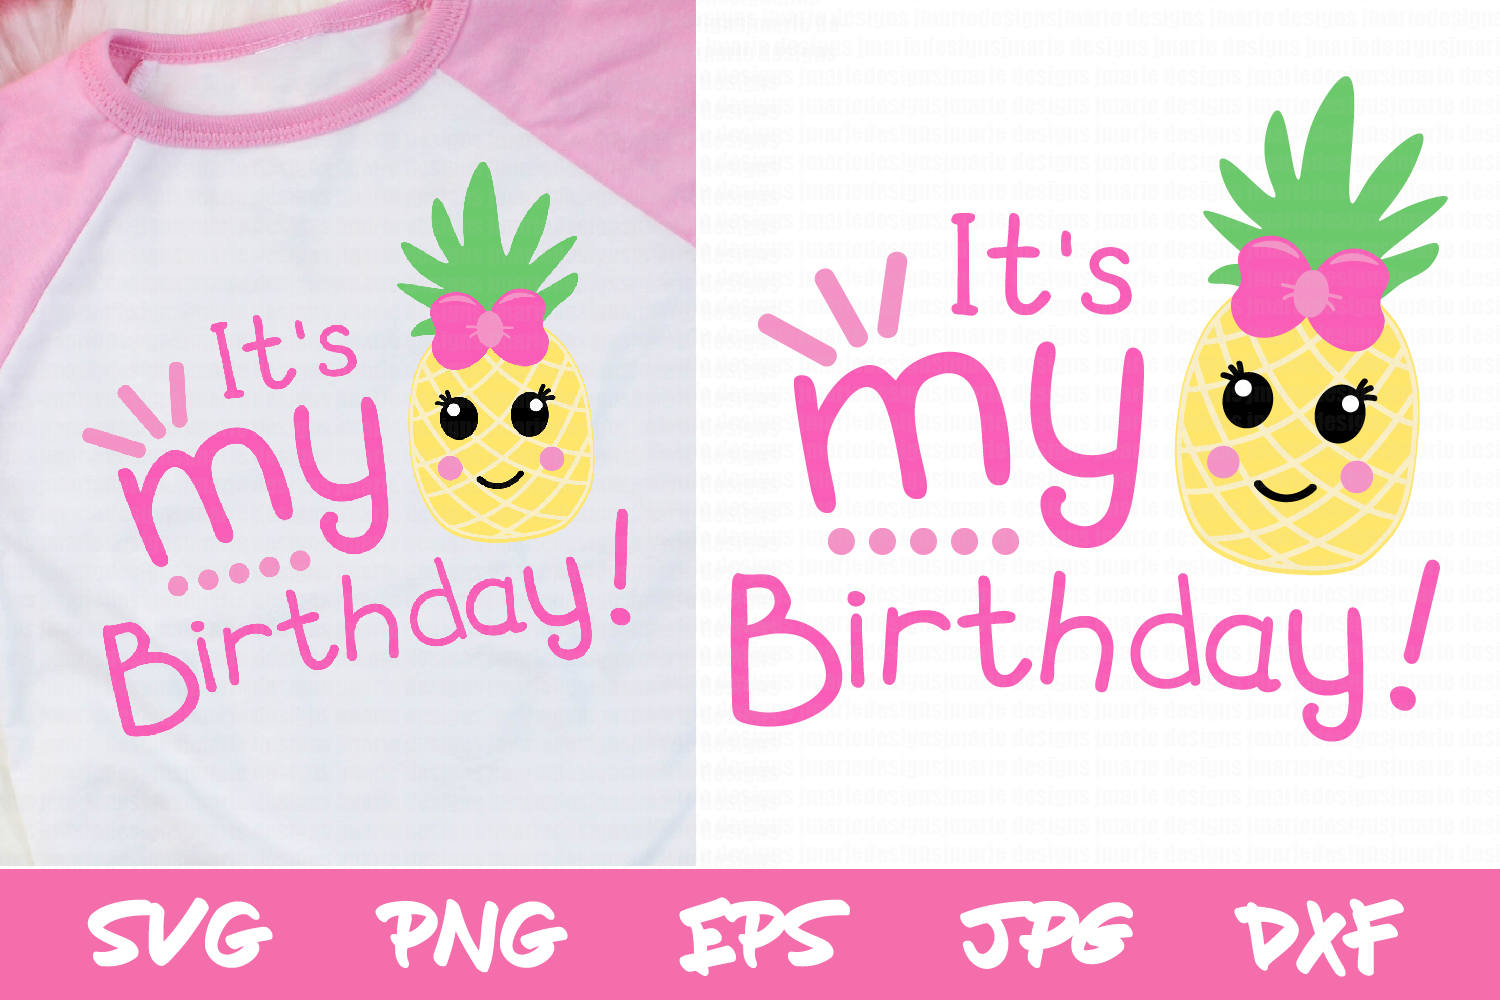 Download Free Birthday Pineapple Graphic By Thejaemarie Creative Fabrica for Cricut Explore, Silhouette and other cutting machines.